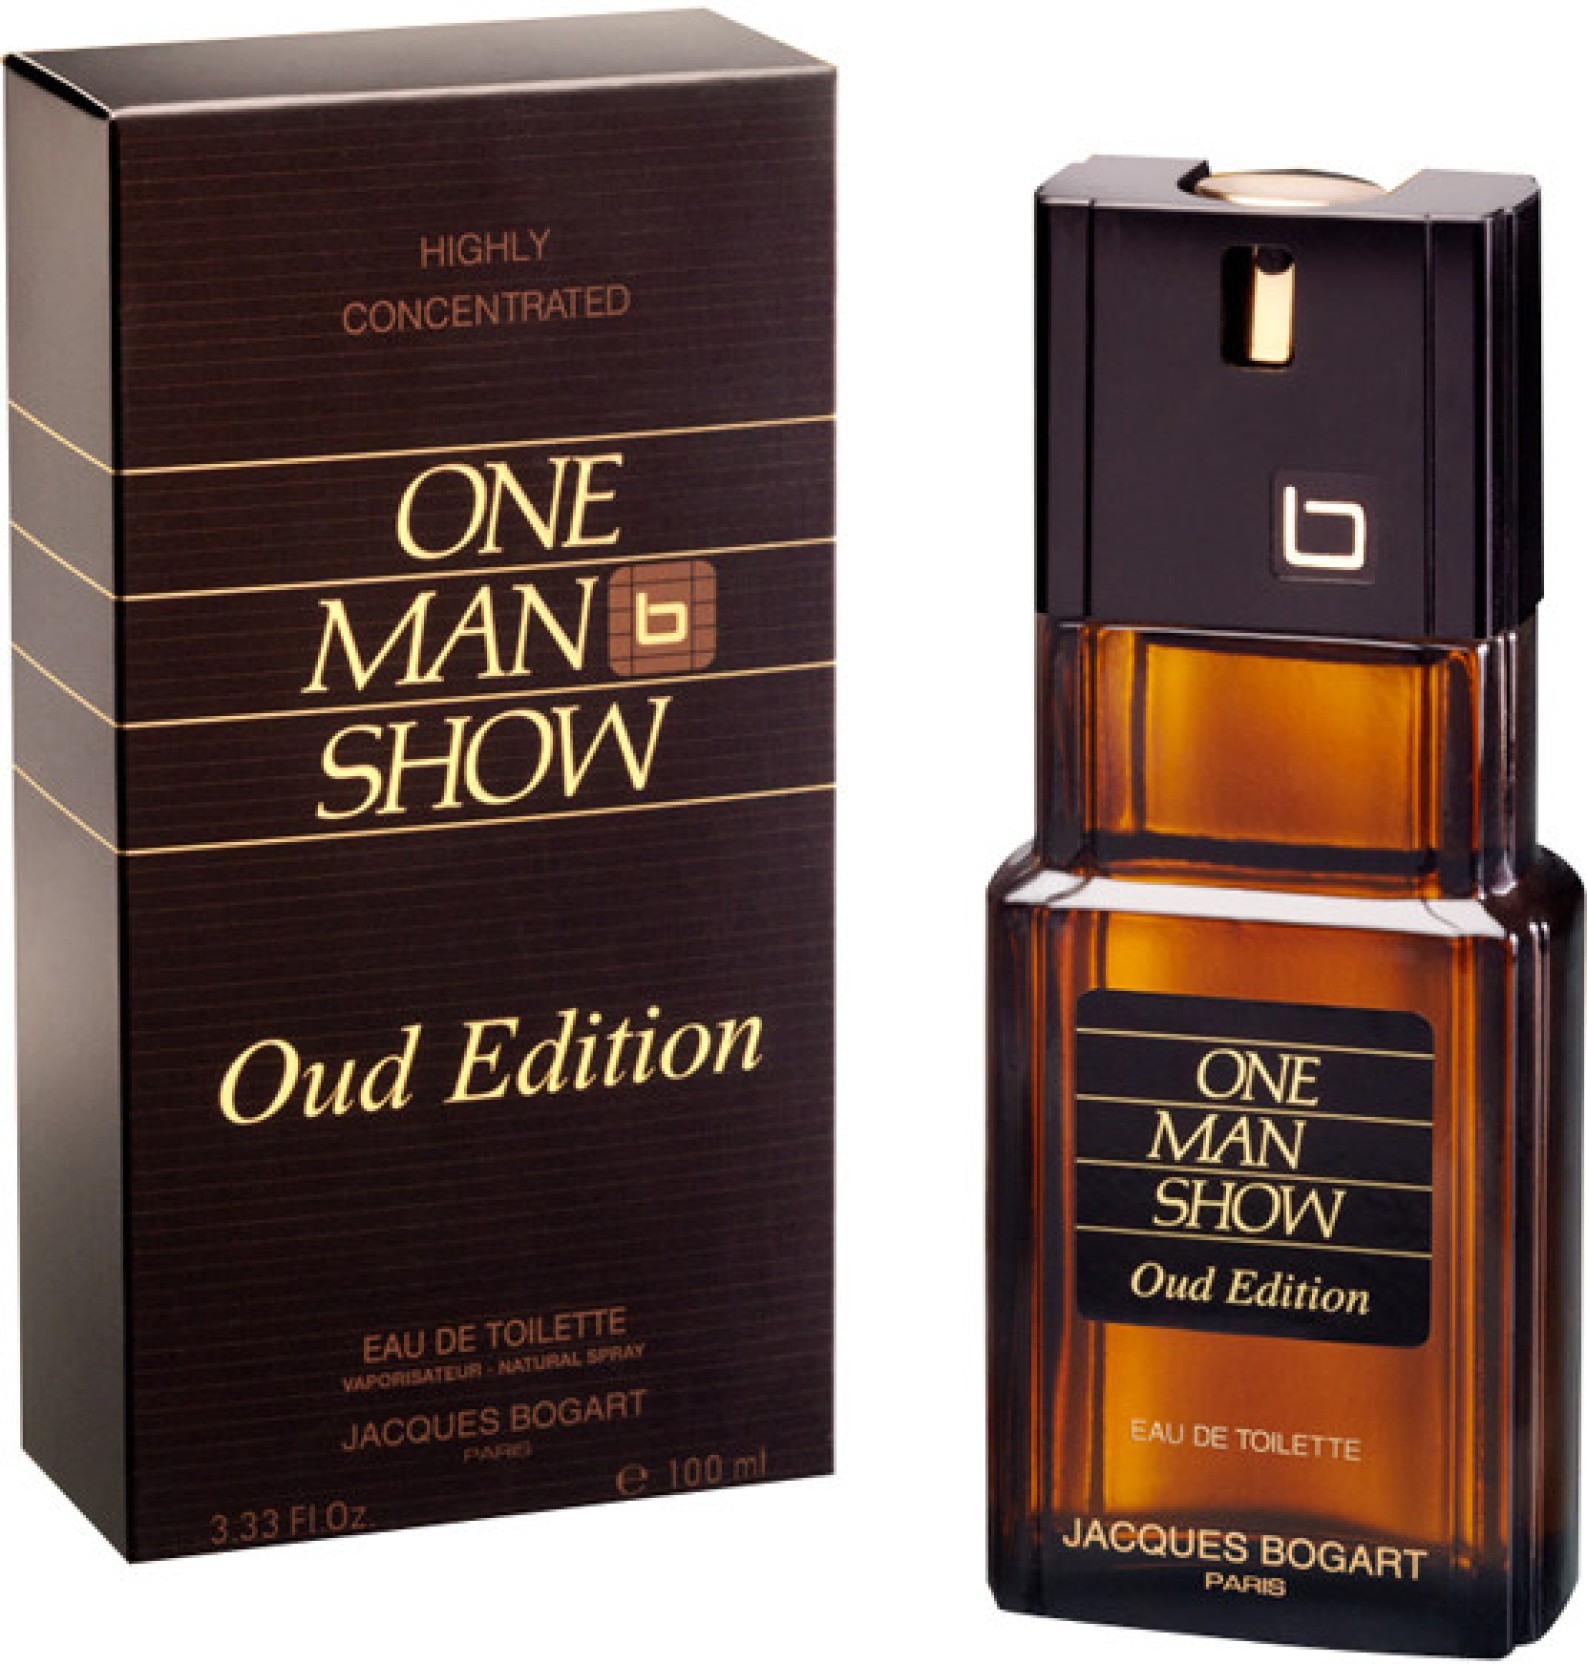 buy jacques bogart one man show oud edition eau de toilette 100 ml online in india. Black Bedroom Furniture Sets. Home Design Ideas